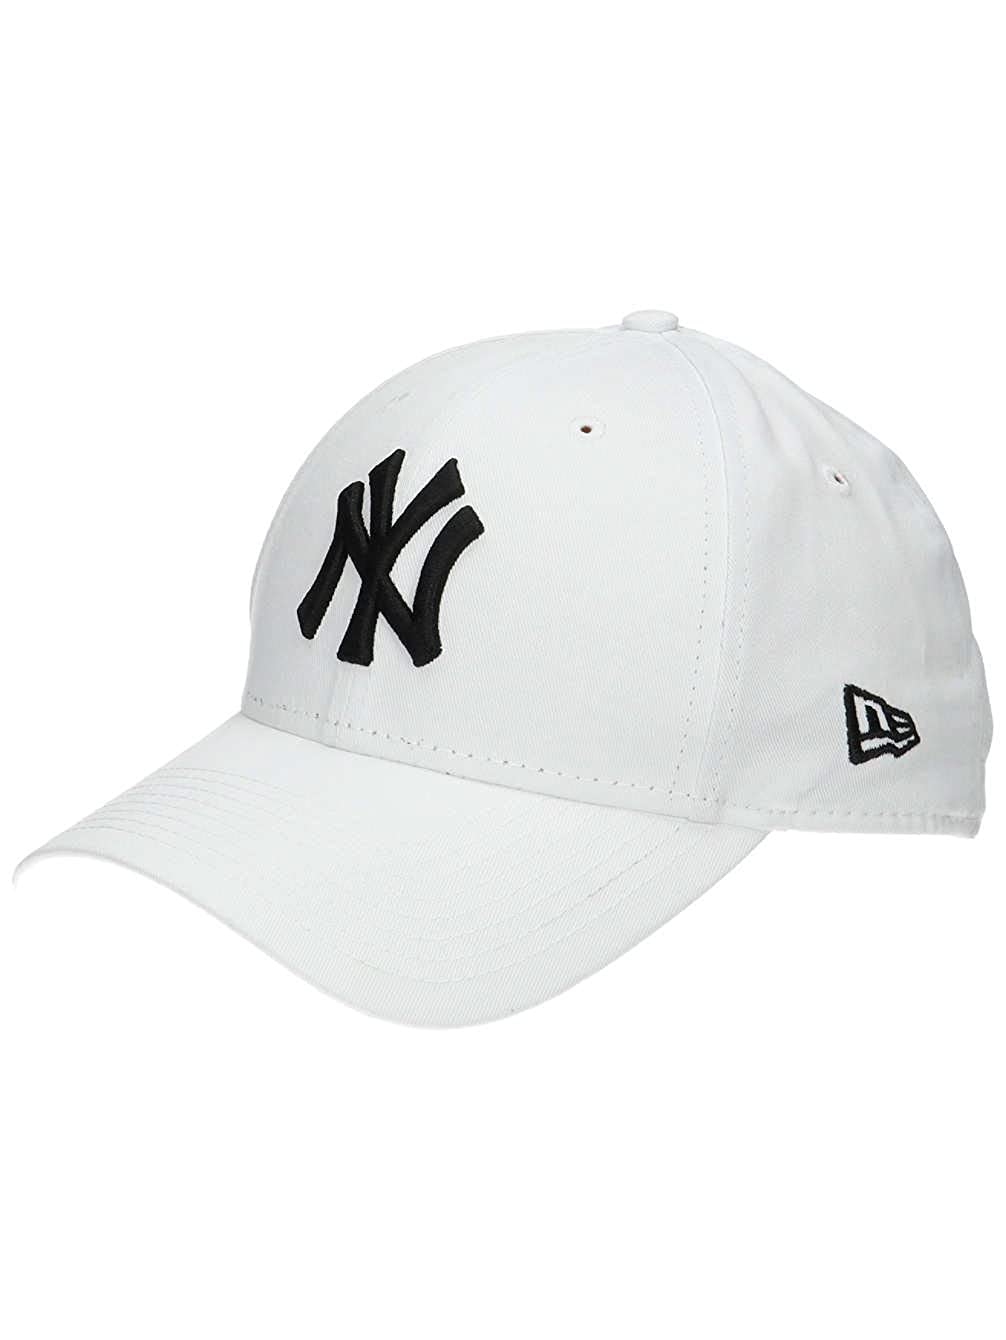 New Era New York Yankees 9FORTY Fit Mens Adjustable Cap White / Black 10745455 at Amazon Mens Clothing store: Sports Fan Baseball Caps